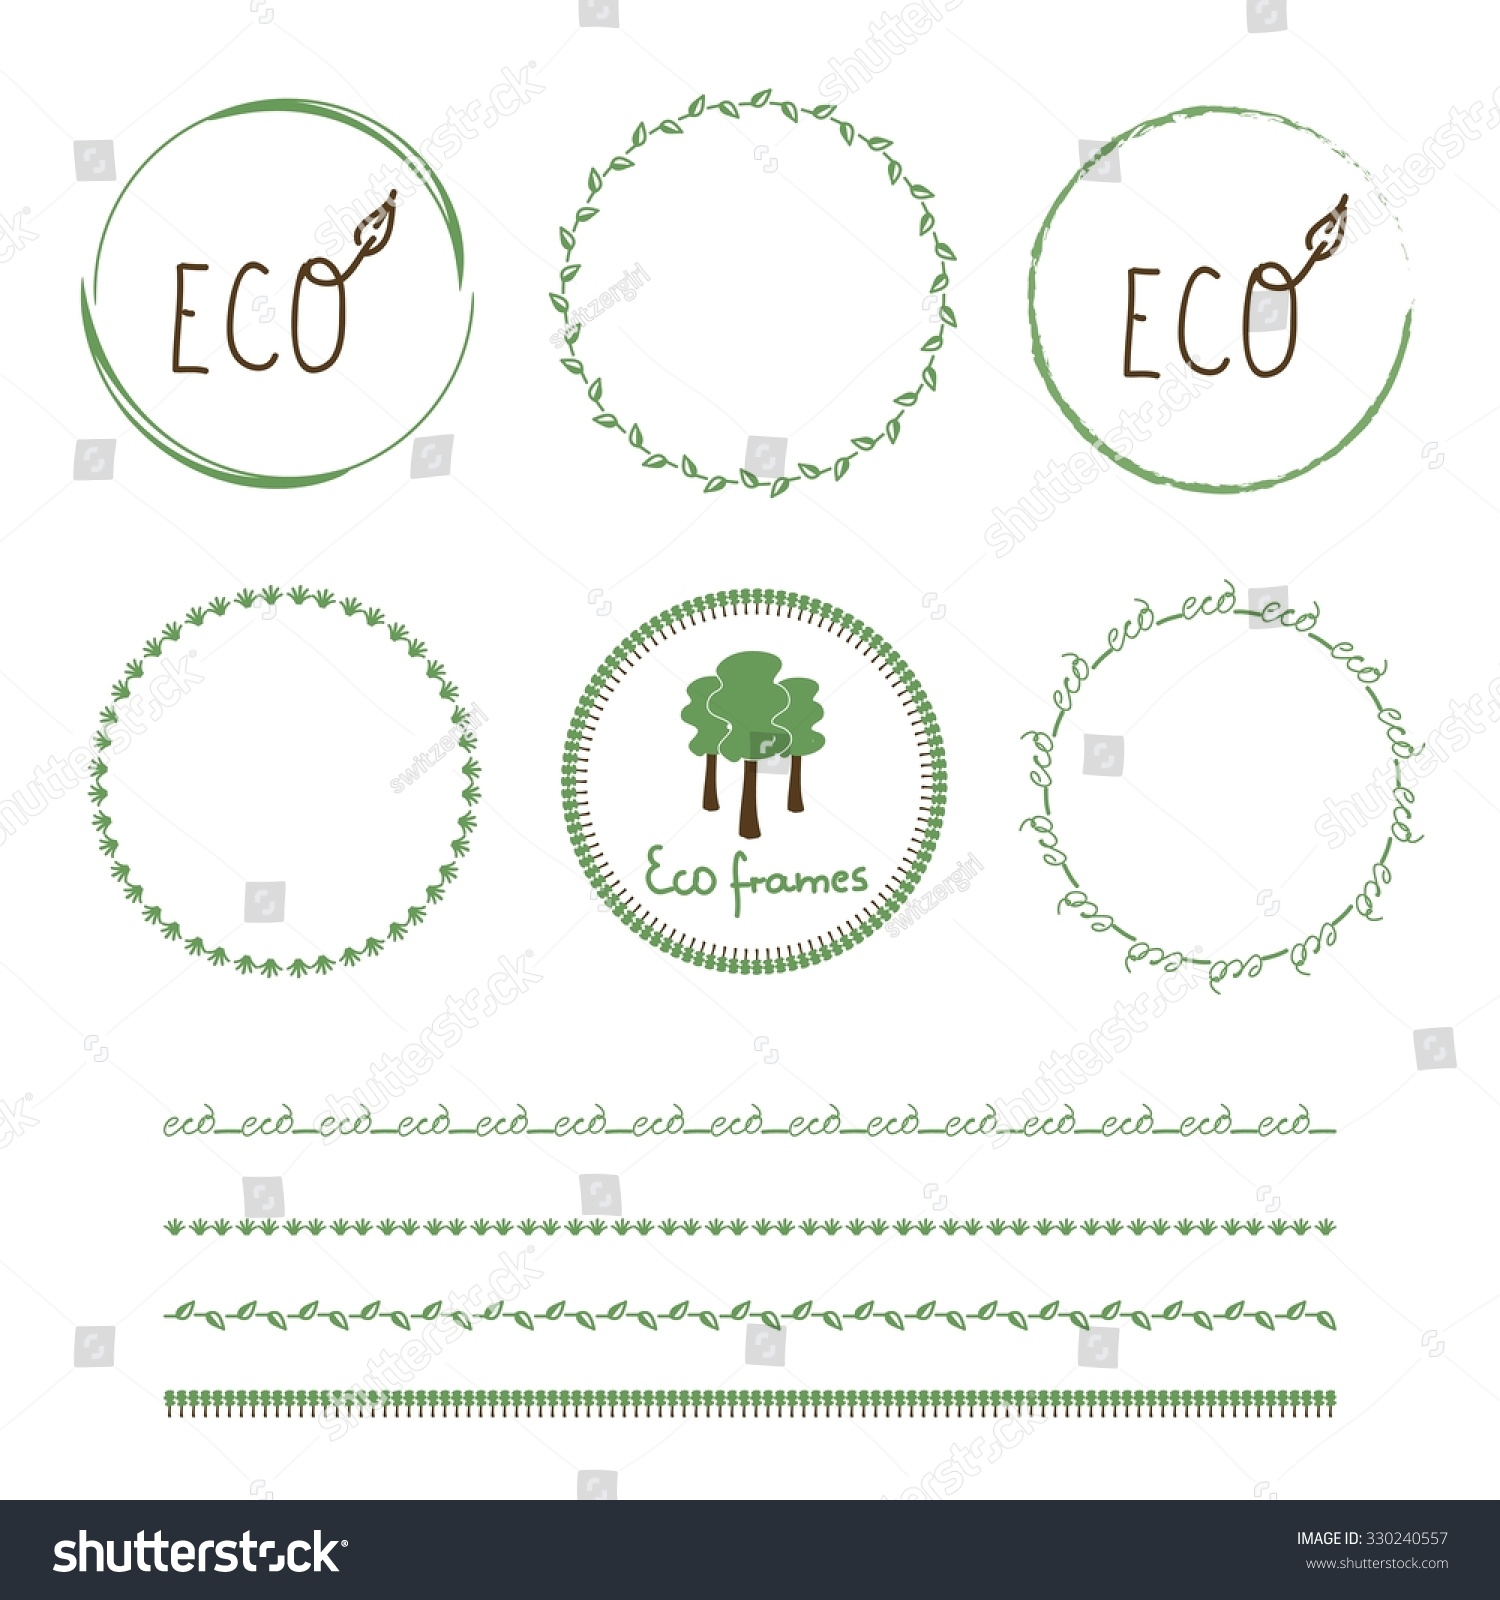 Eco Frames Made Vector Green Brushes Stock Vector 330240557 ...